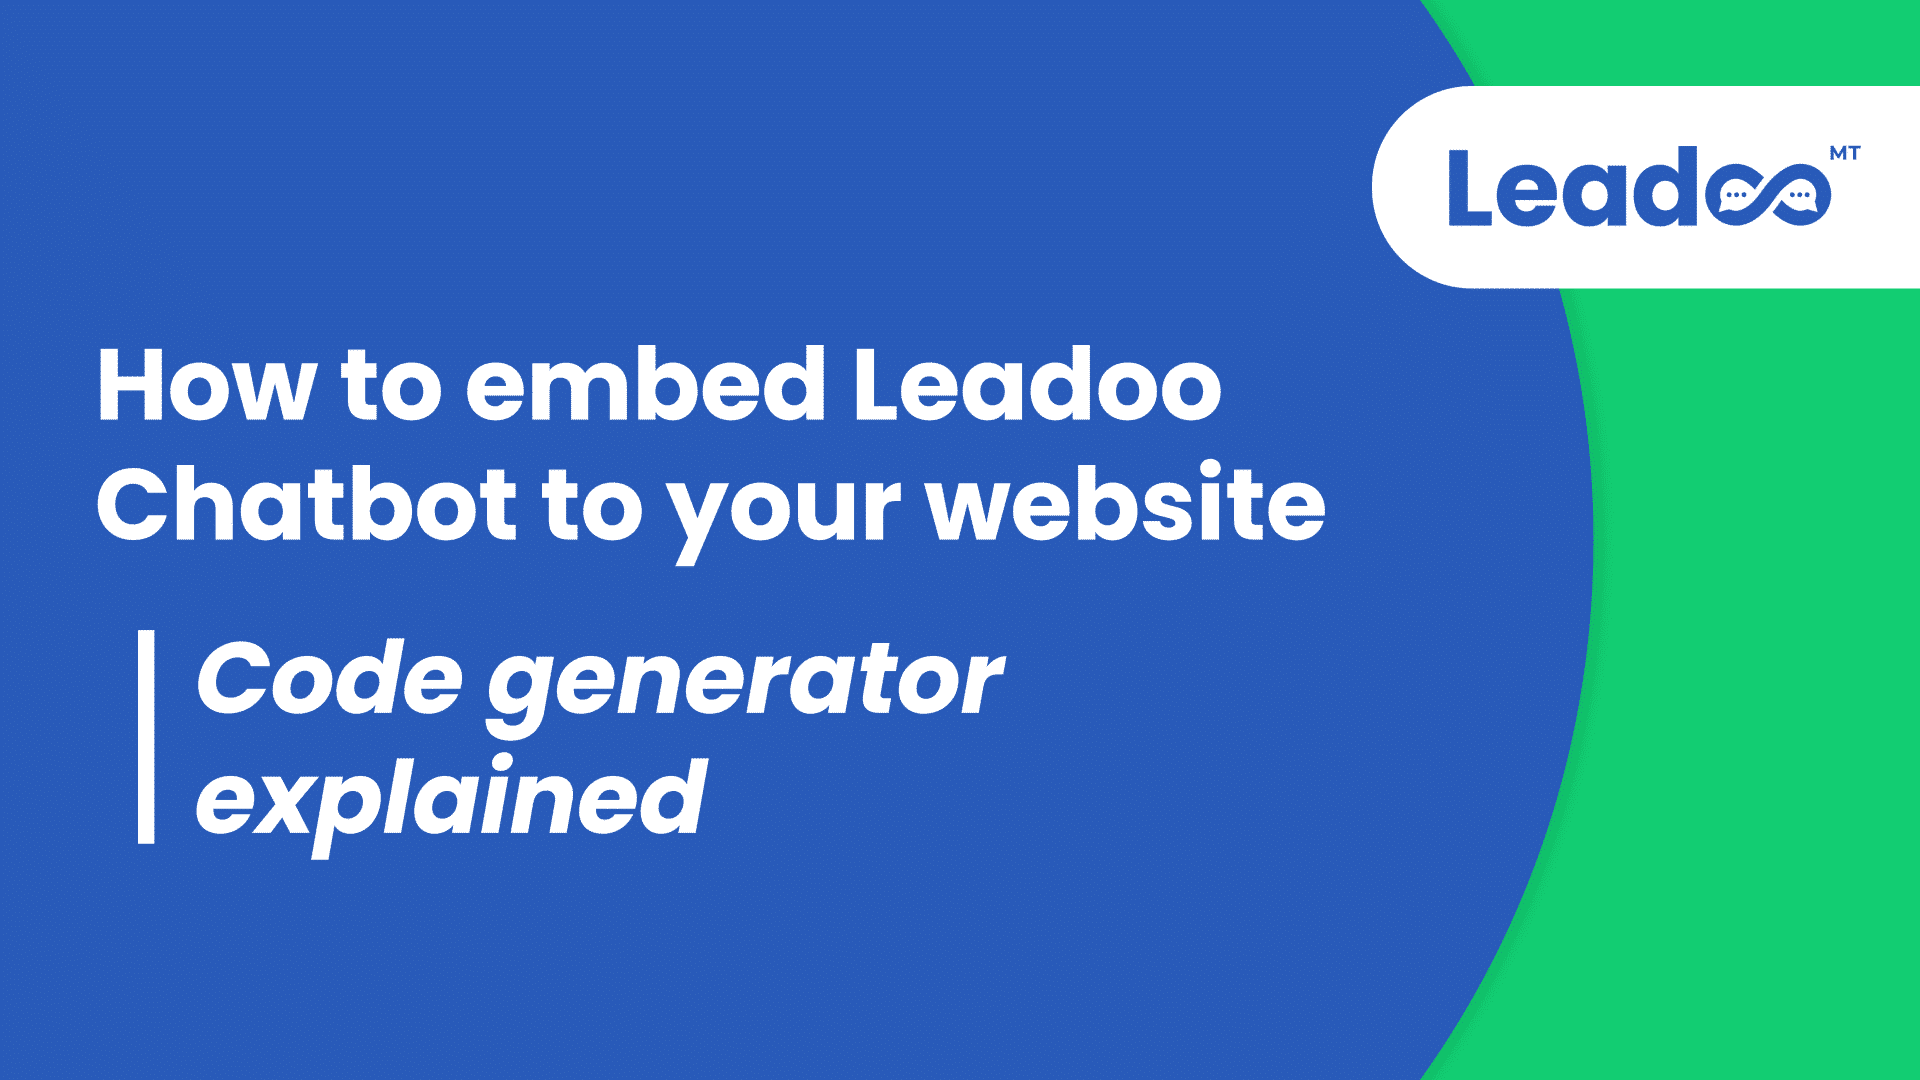 How to embed Leadoo Chatbot to your website code generator Help Center Getting started with Leadoo